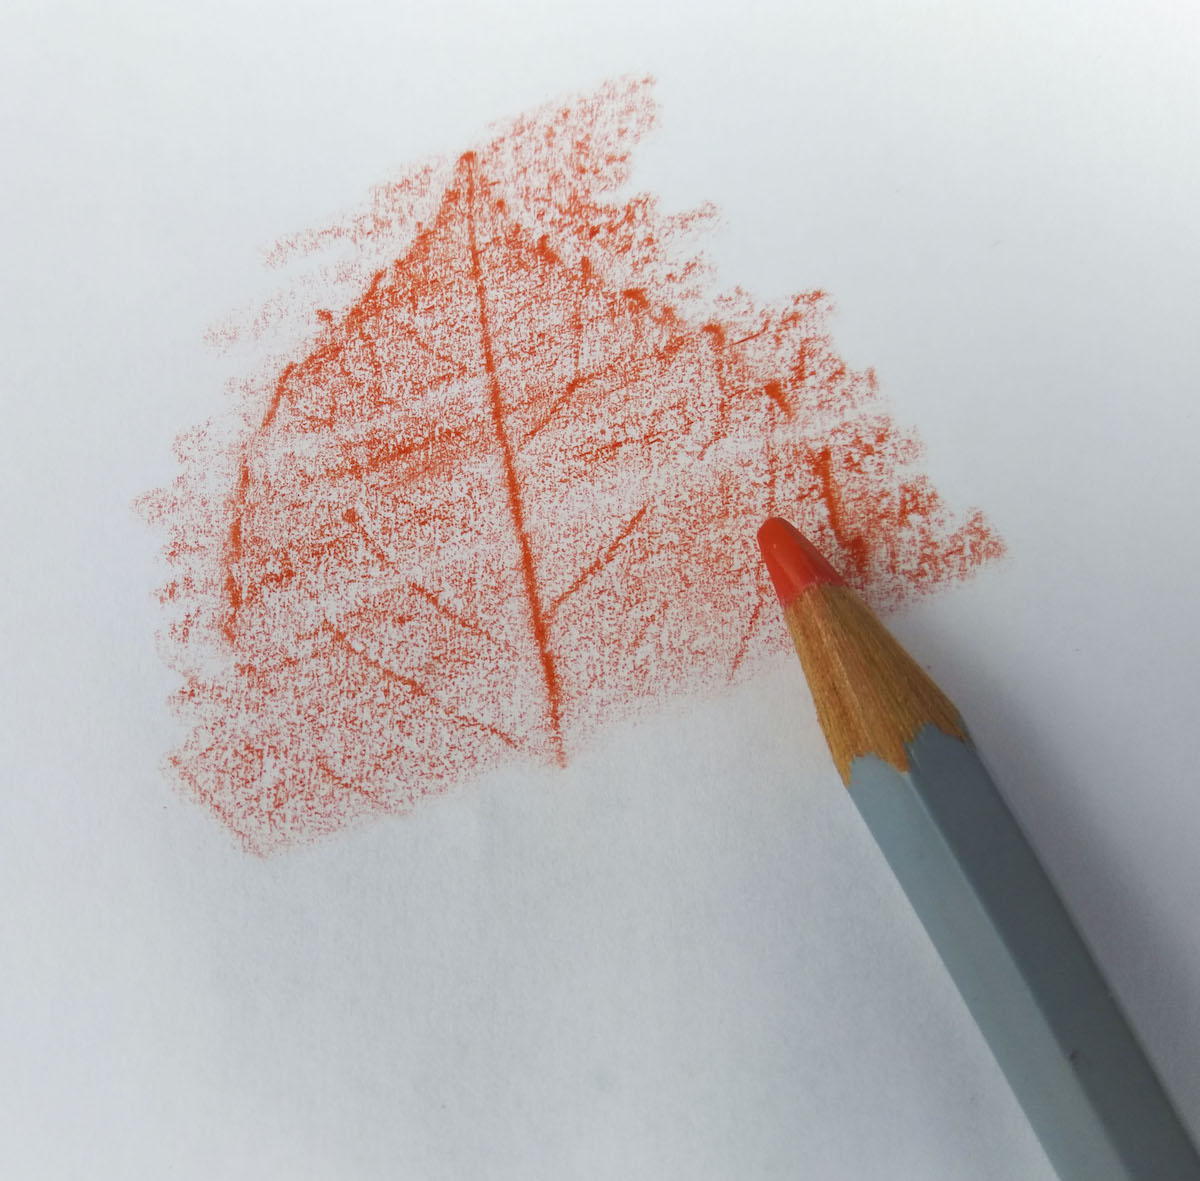 Leaf (or coin) Rubbings